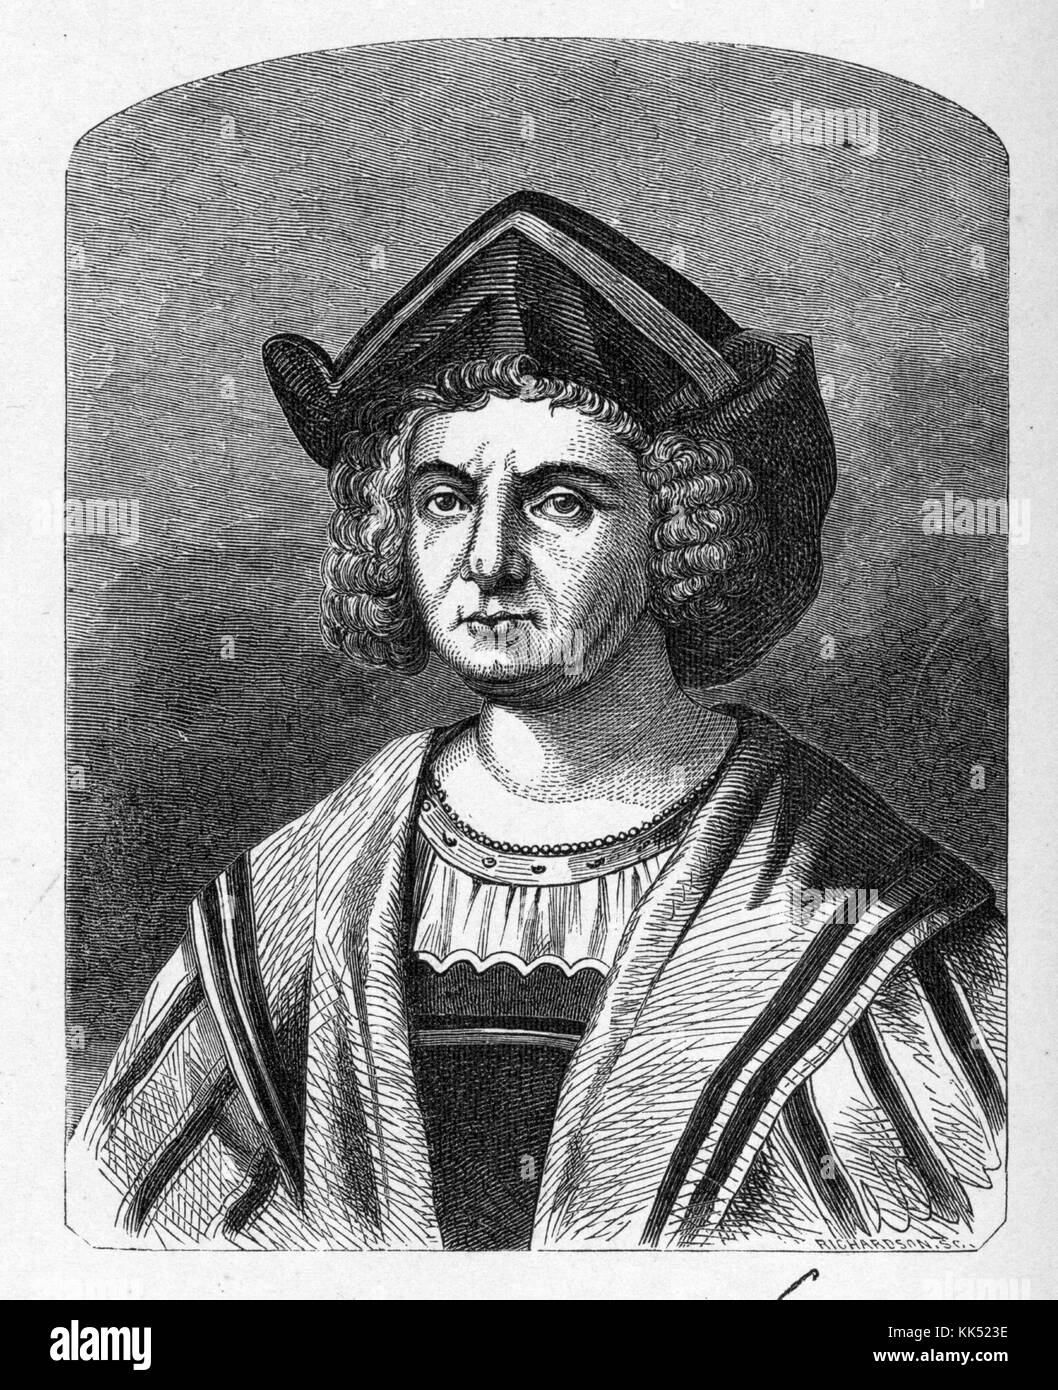 a synopsis of the documents of christopher columbus Christopher columbus was the eldest of five children christopher columbus had two sons by different mothers his heir was diego columbus his book ephemerides was used by christopher columbus and amerigo vespucci to measure longitudes in their explorations of the new world.